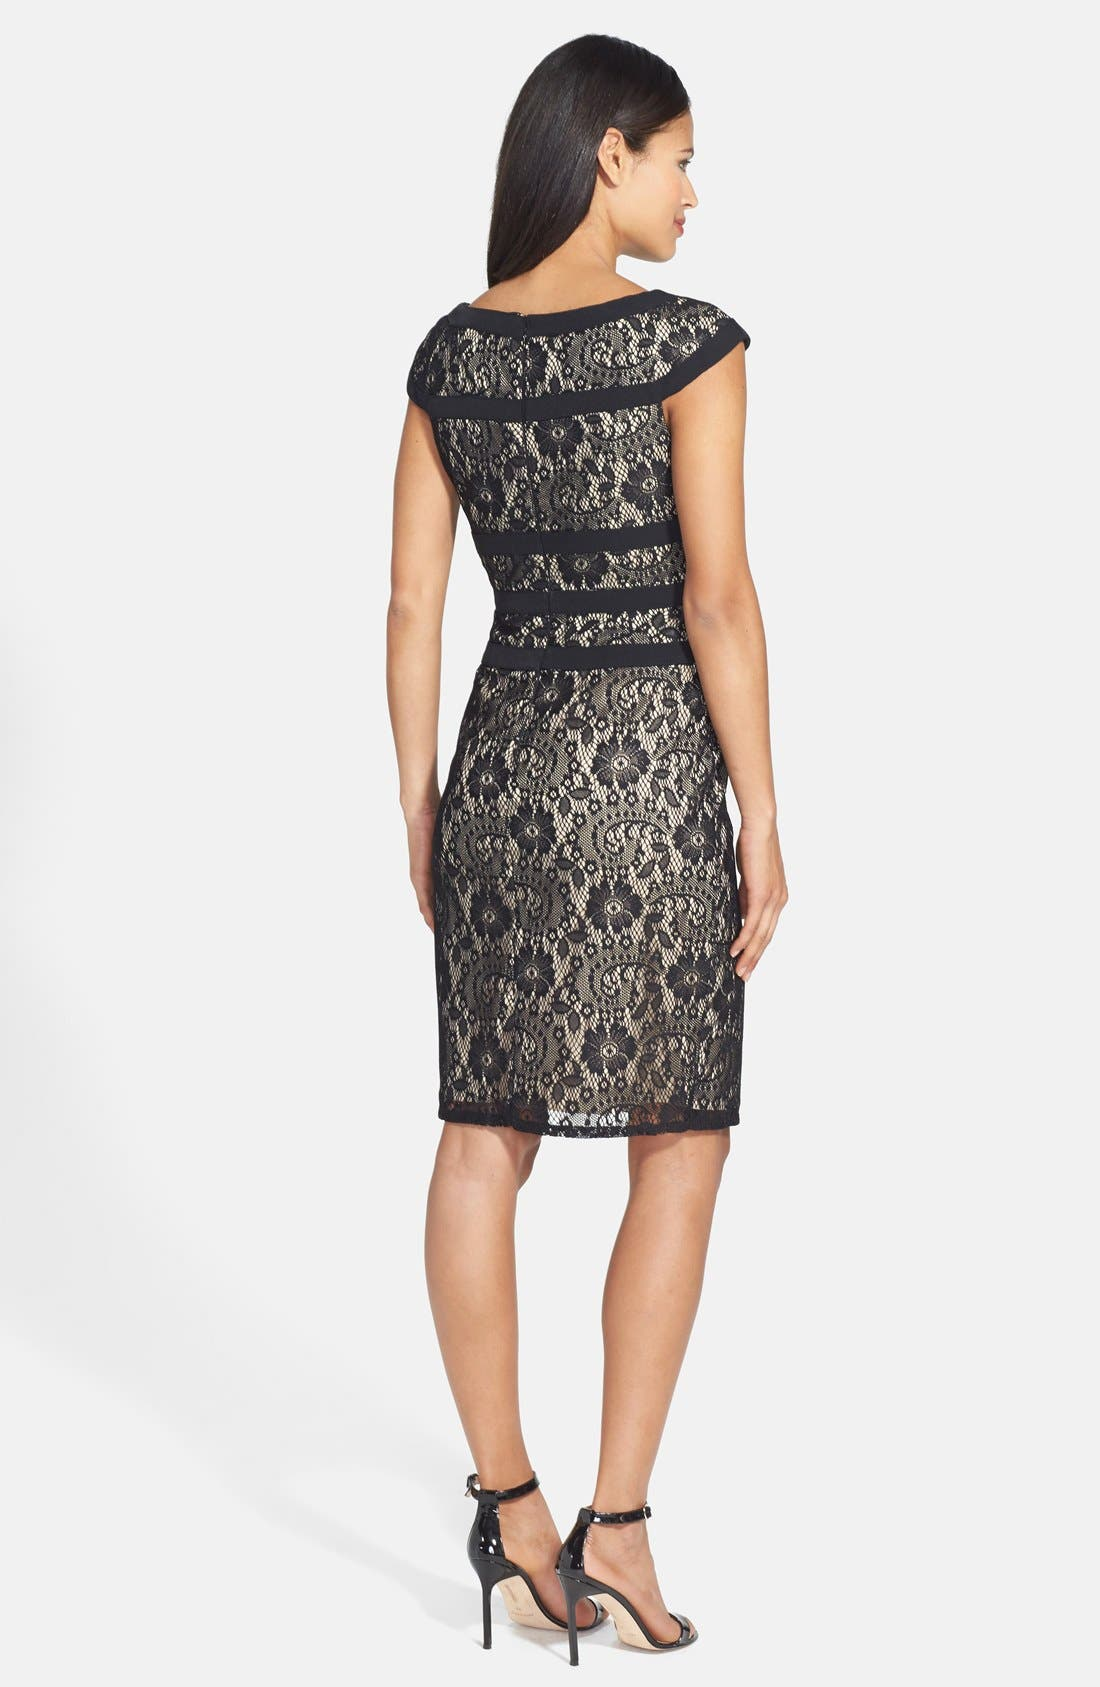 ADRIANNA PAPELL, Lace Sheath Dress, Alternate thumbnail 5, color, 001